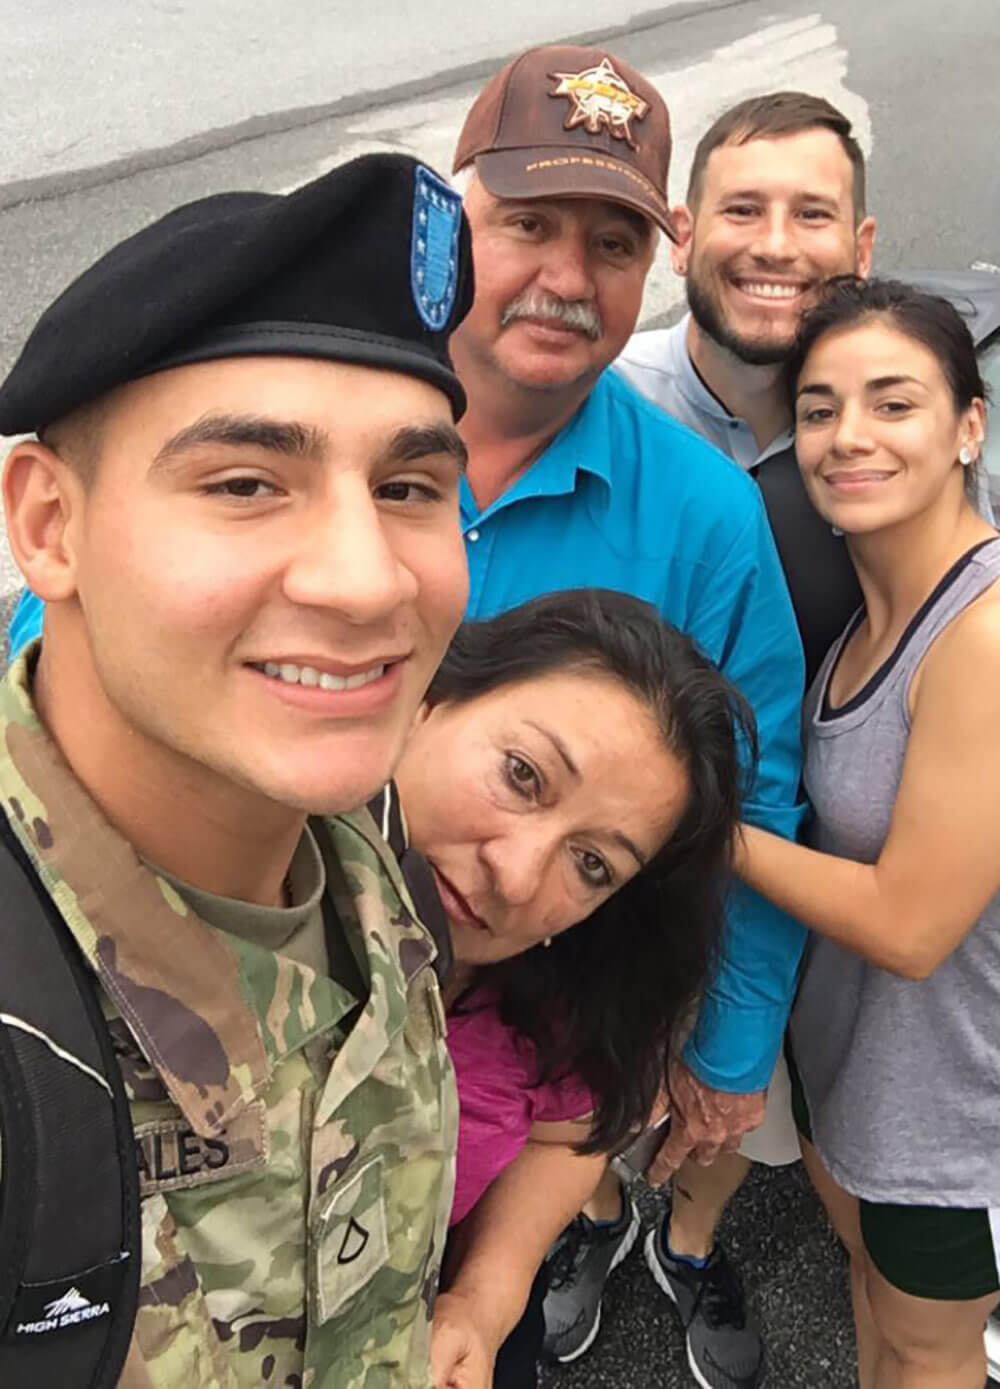 Then-PFC Efrain Morales takes a selfie with his mother, father Efrain Morales Sr., sister and brother-in-law after his boot camp graduation. Photo courtesy SPC Efrain Morales